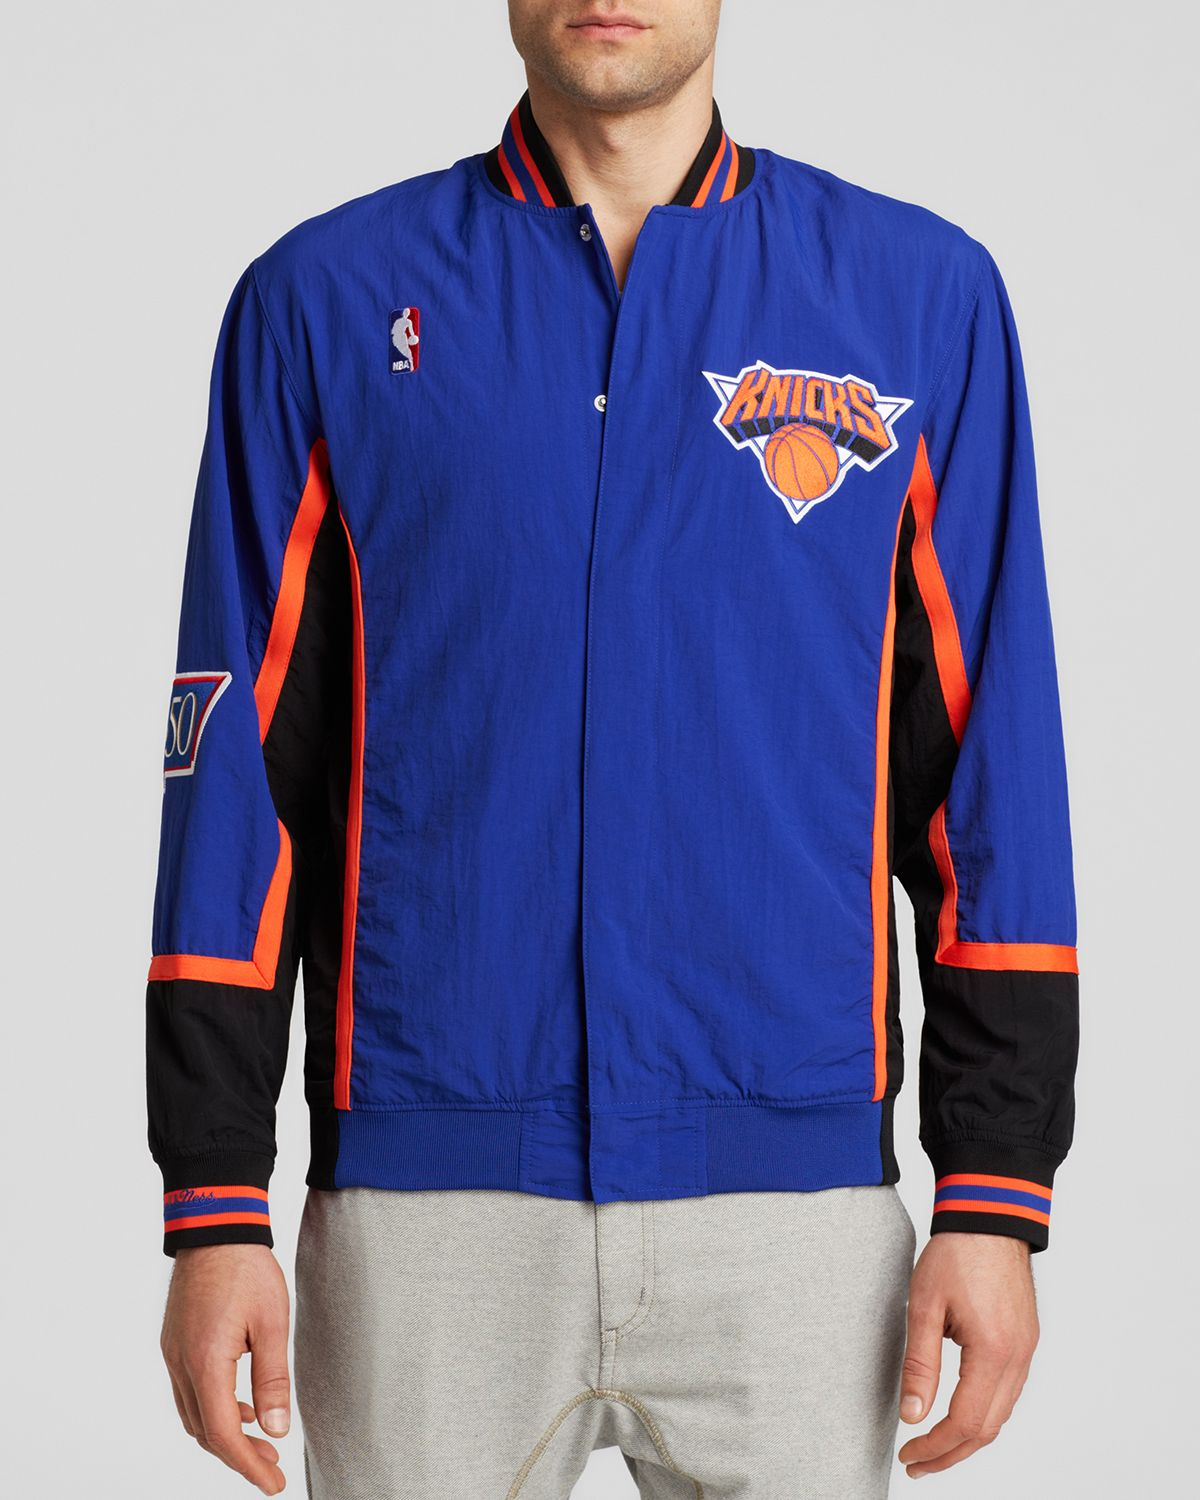 Womens Knicks Shirts